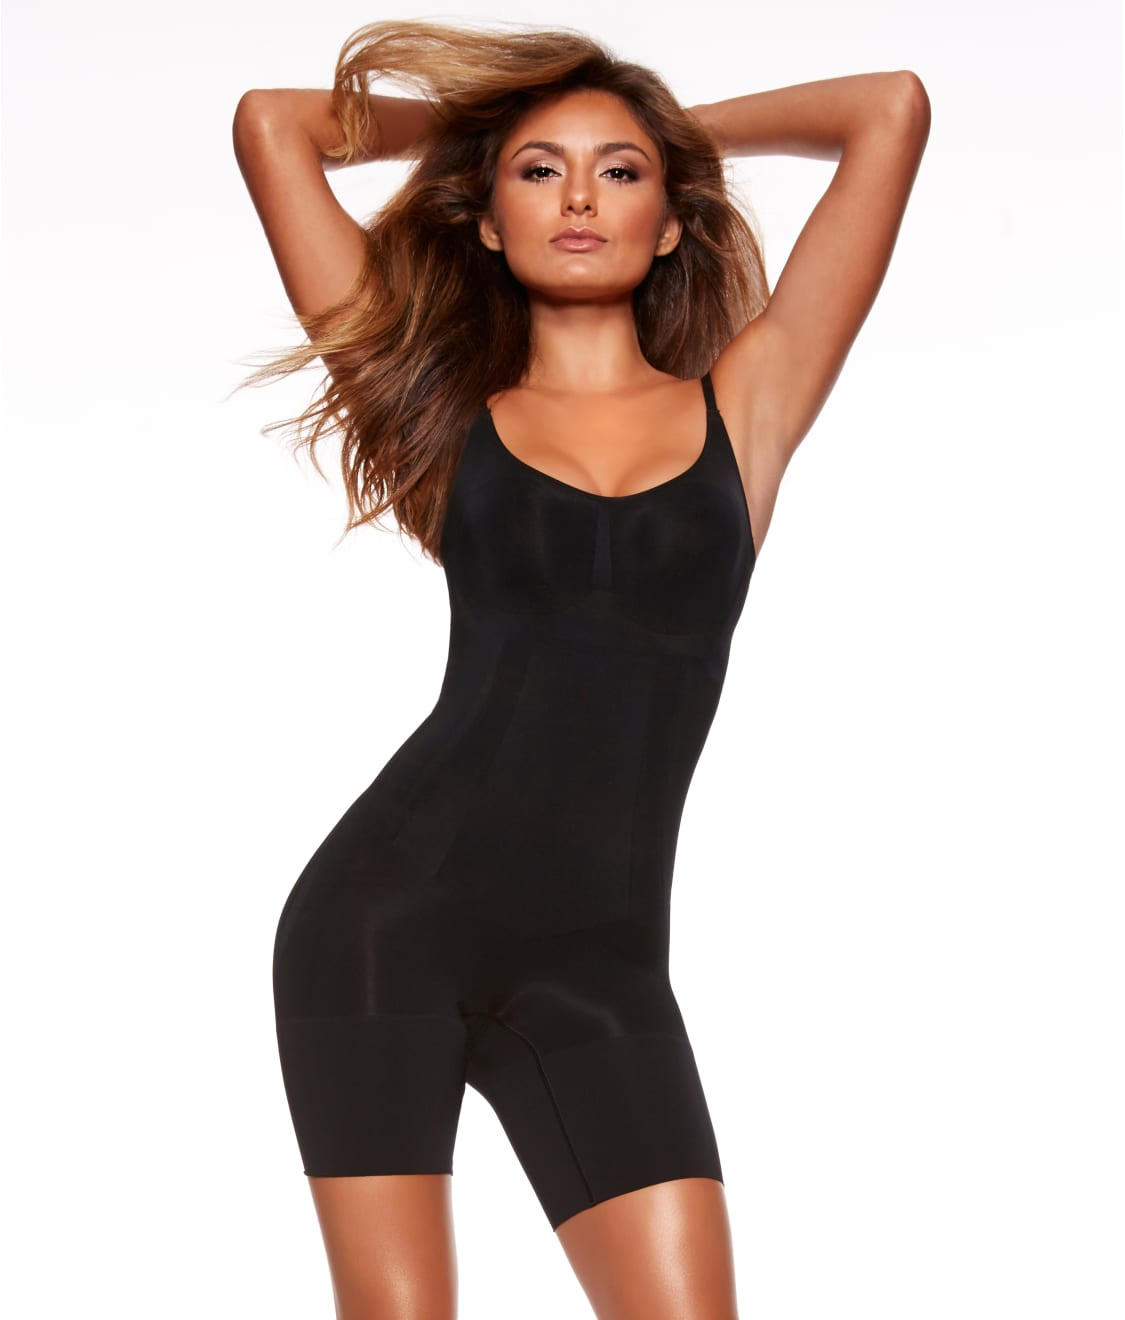 96163236a0 Bodysuit Shapewear and Shaping Bodysuits